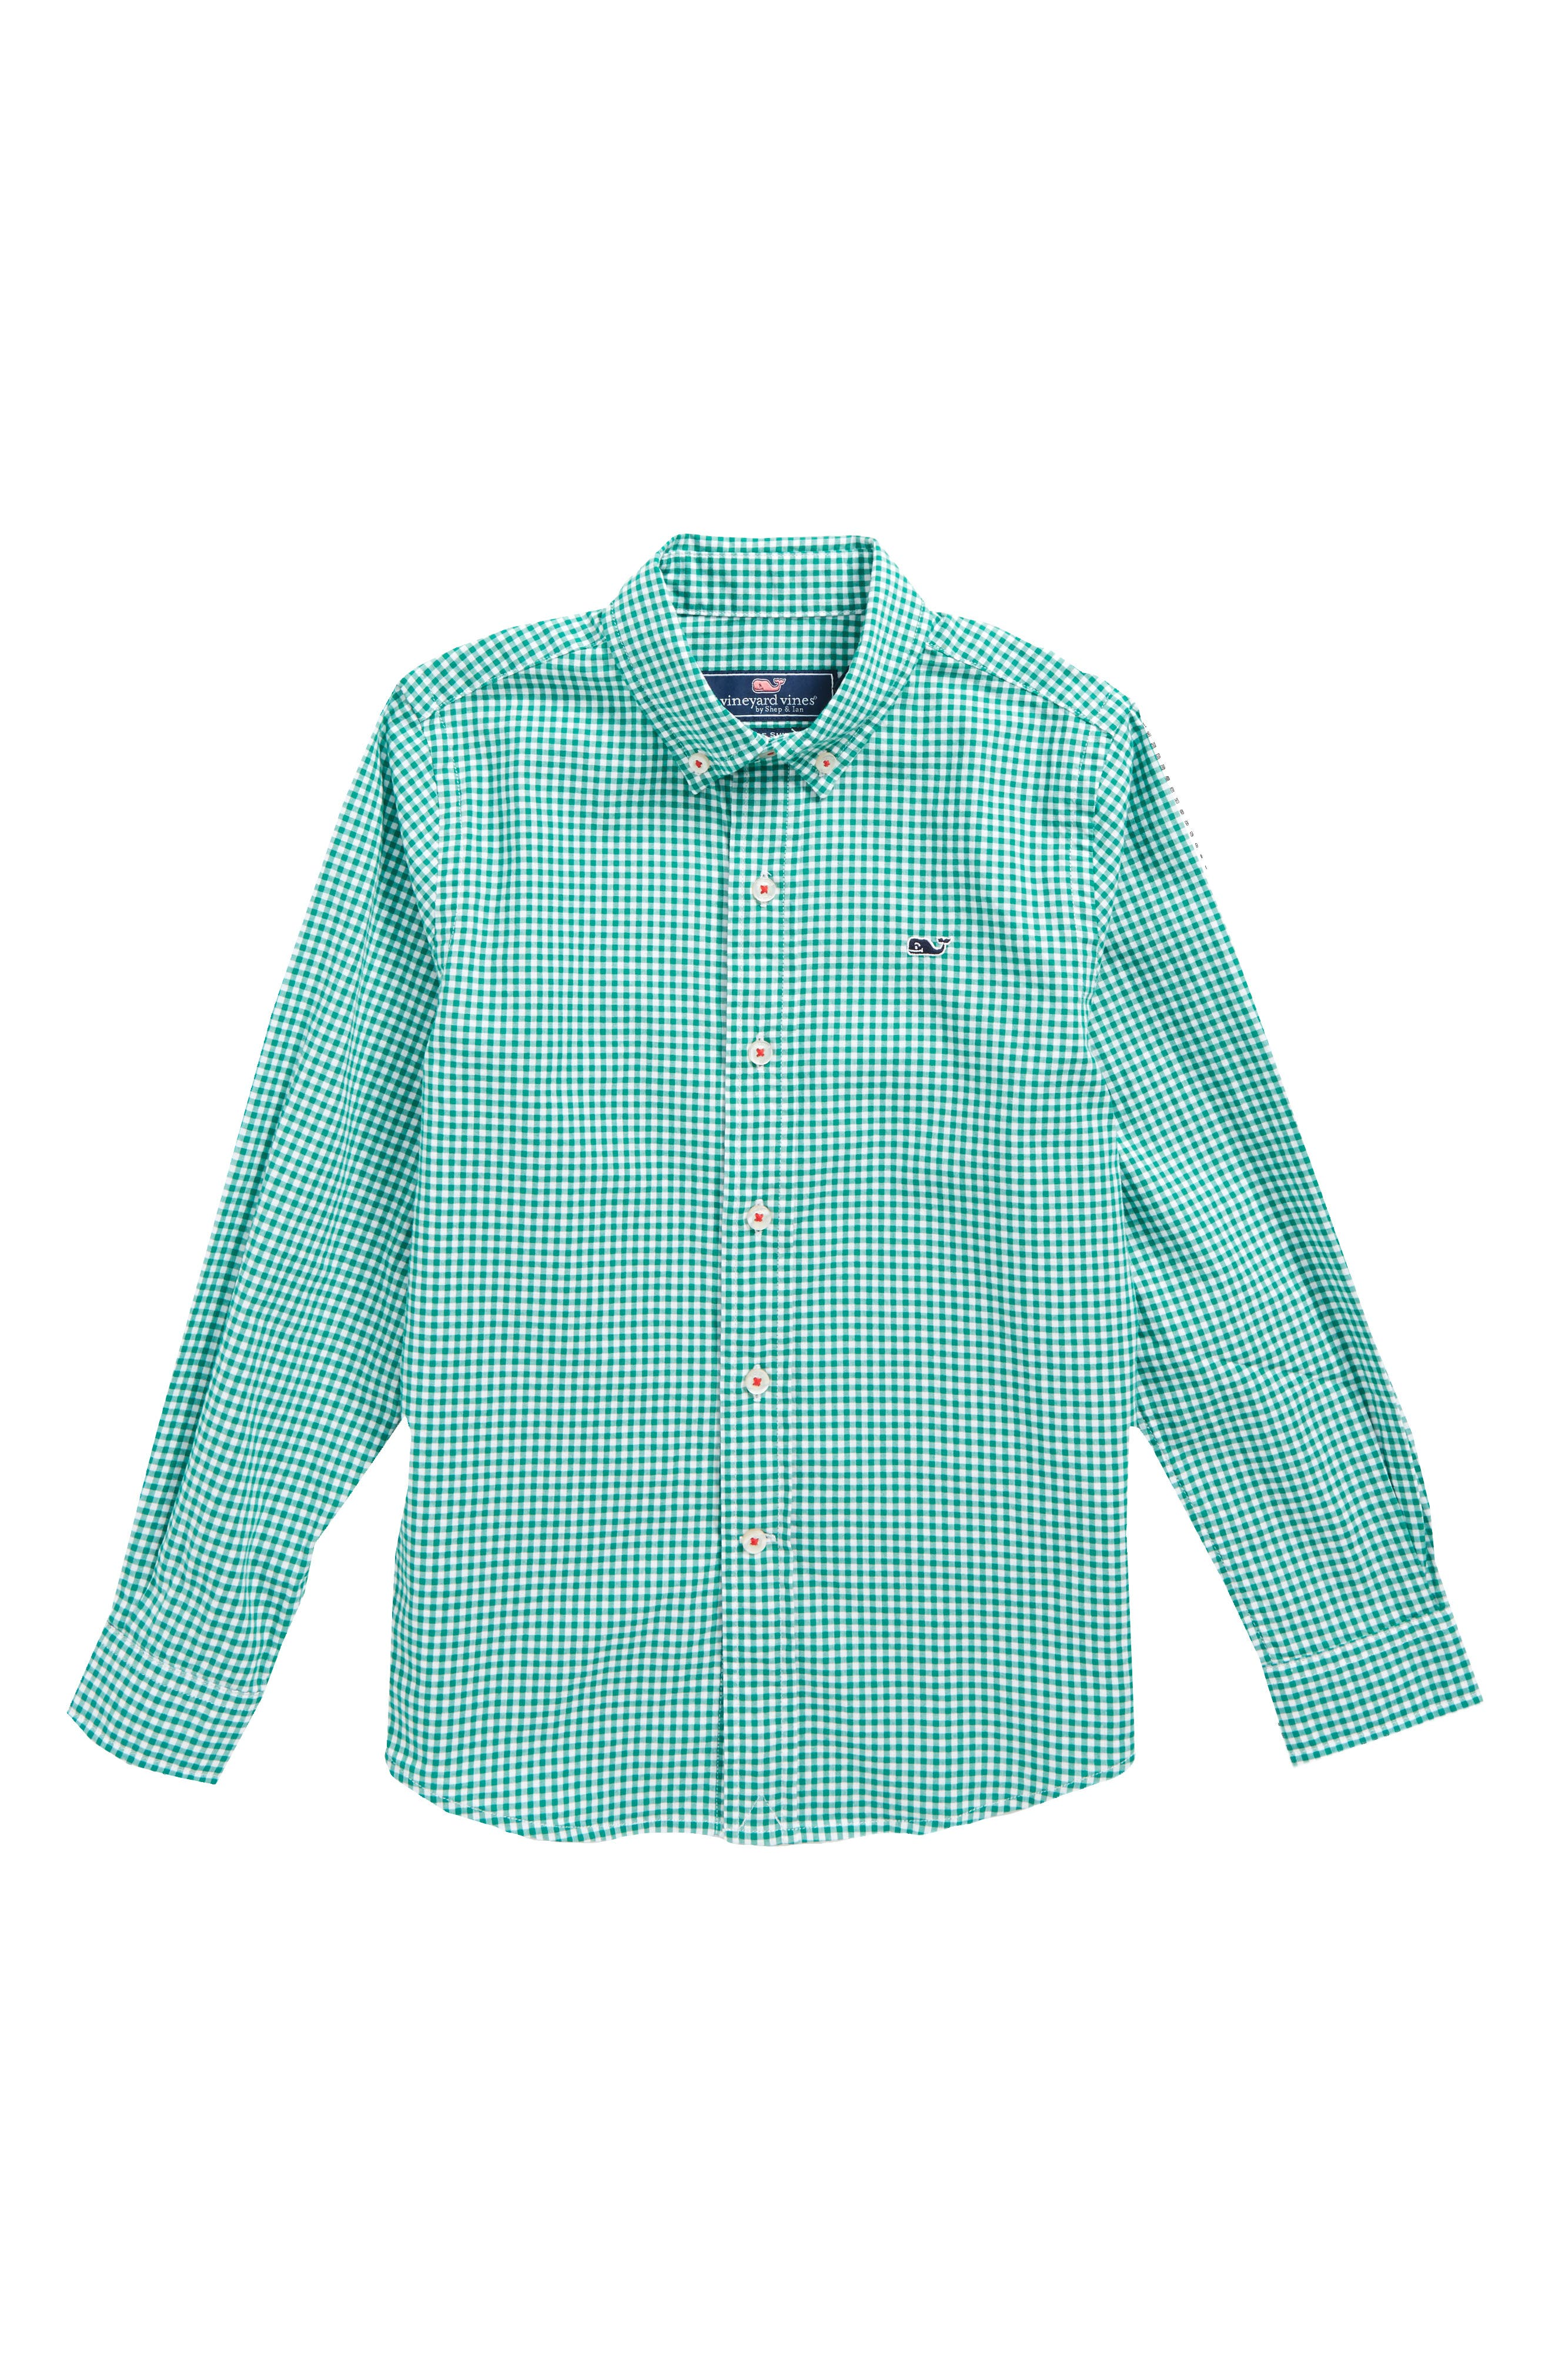 Old Town Gingham Whale Shirt,                             Main thumbnail 1, color,                             Holly